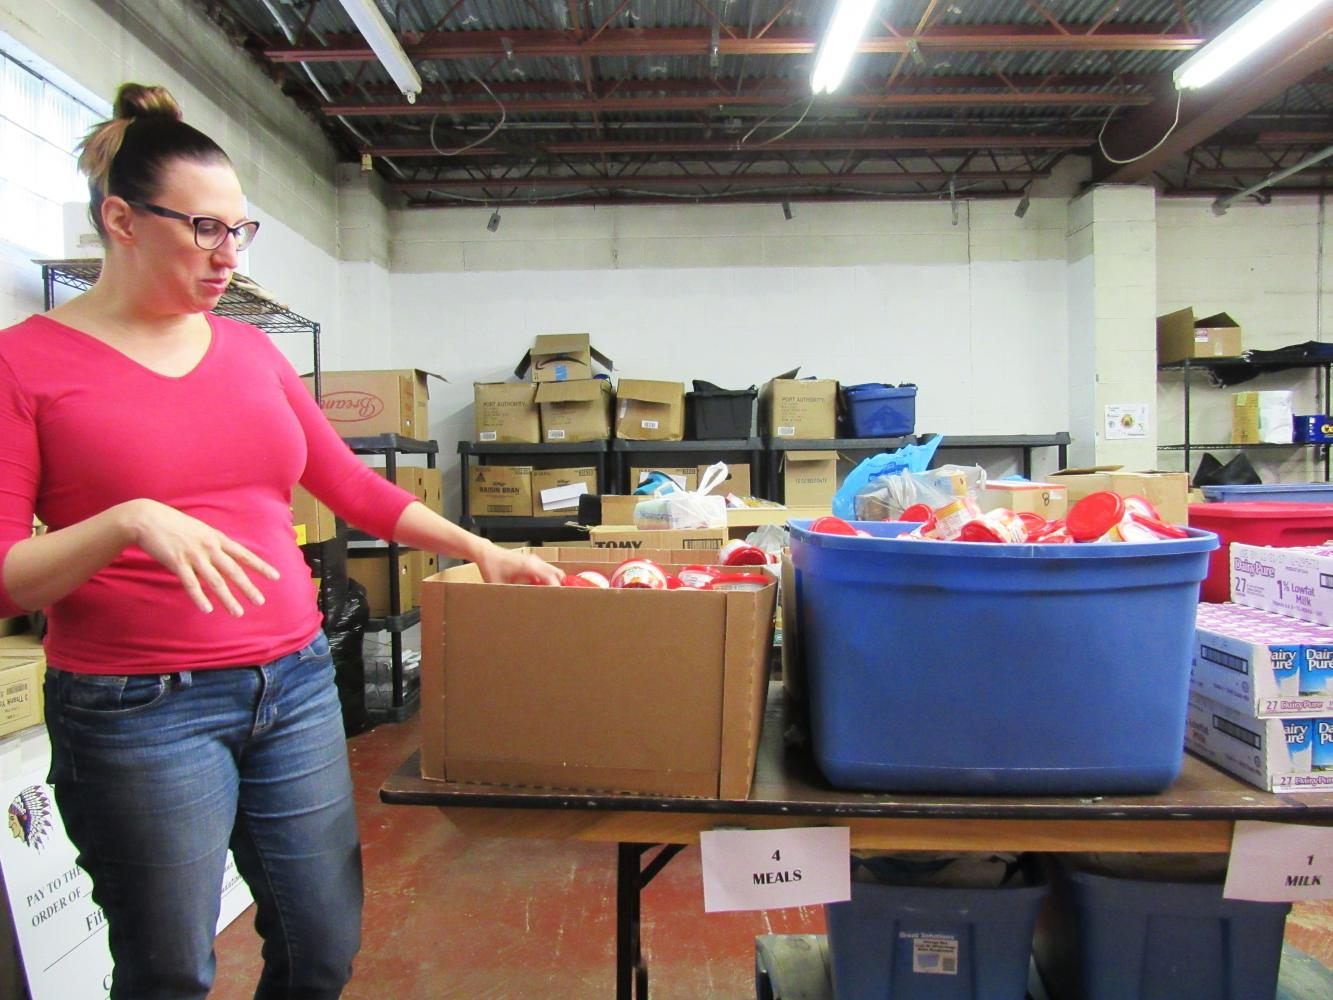 Natalie Kauffman, who coordinates the Cambria County Backpack Project, explains the assembly line that volunteers use to pack the backpacks each Monday night.